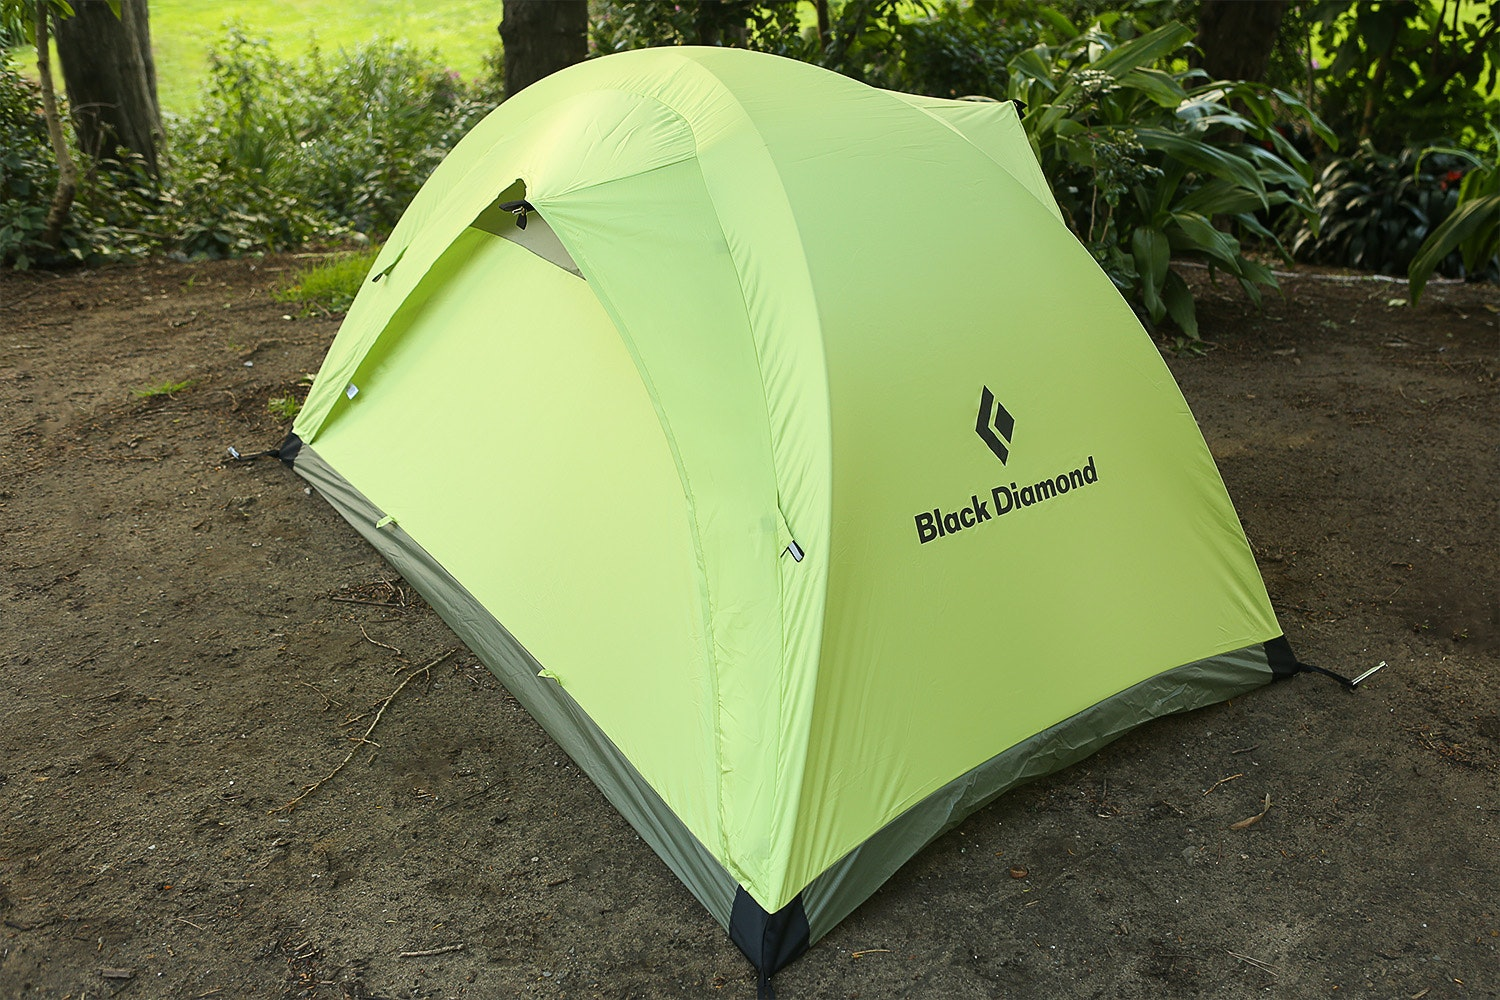 Black Diamond HiLight Tent & Black Diamond HiLight Tent | Price u0026 Reviews | Massdrop